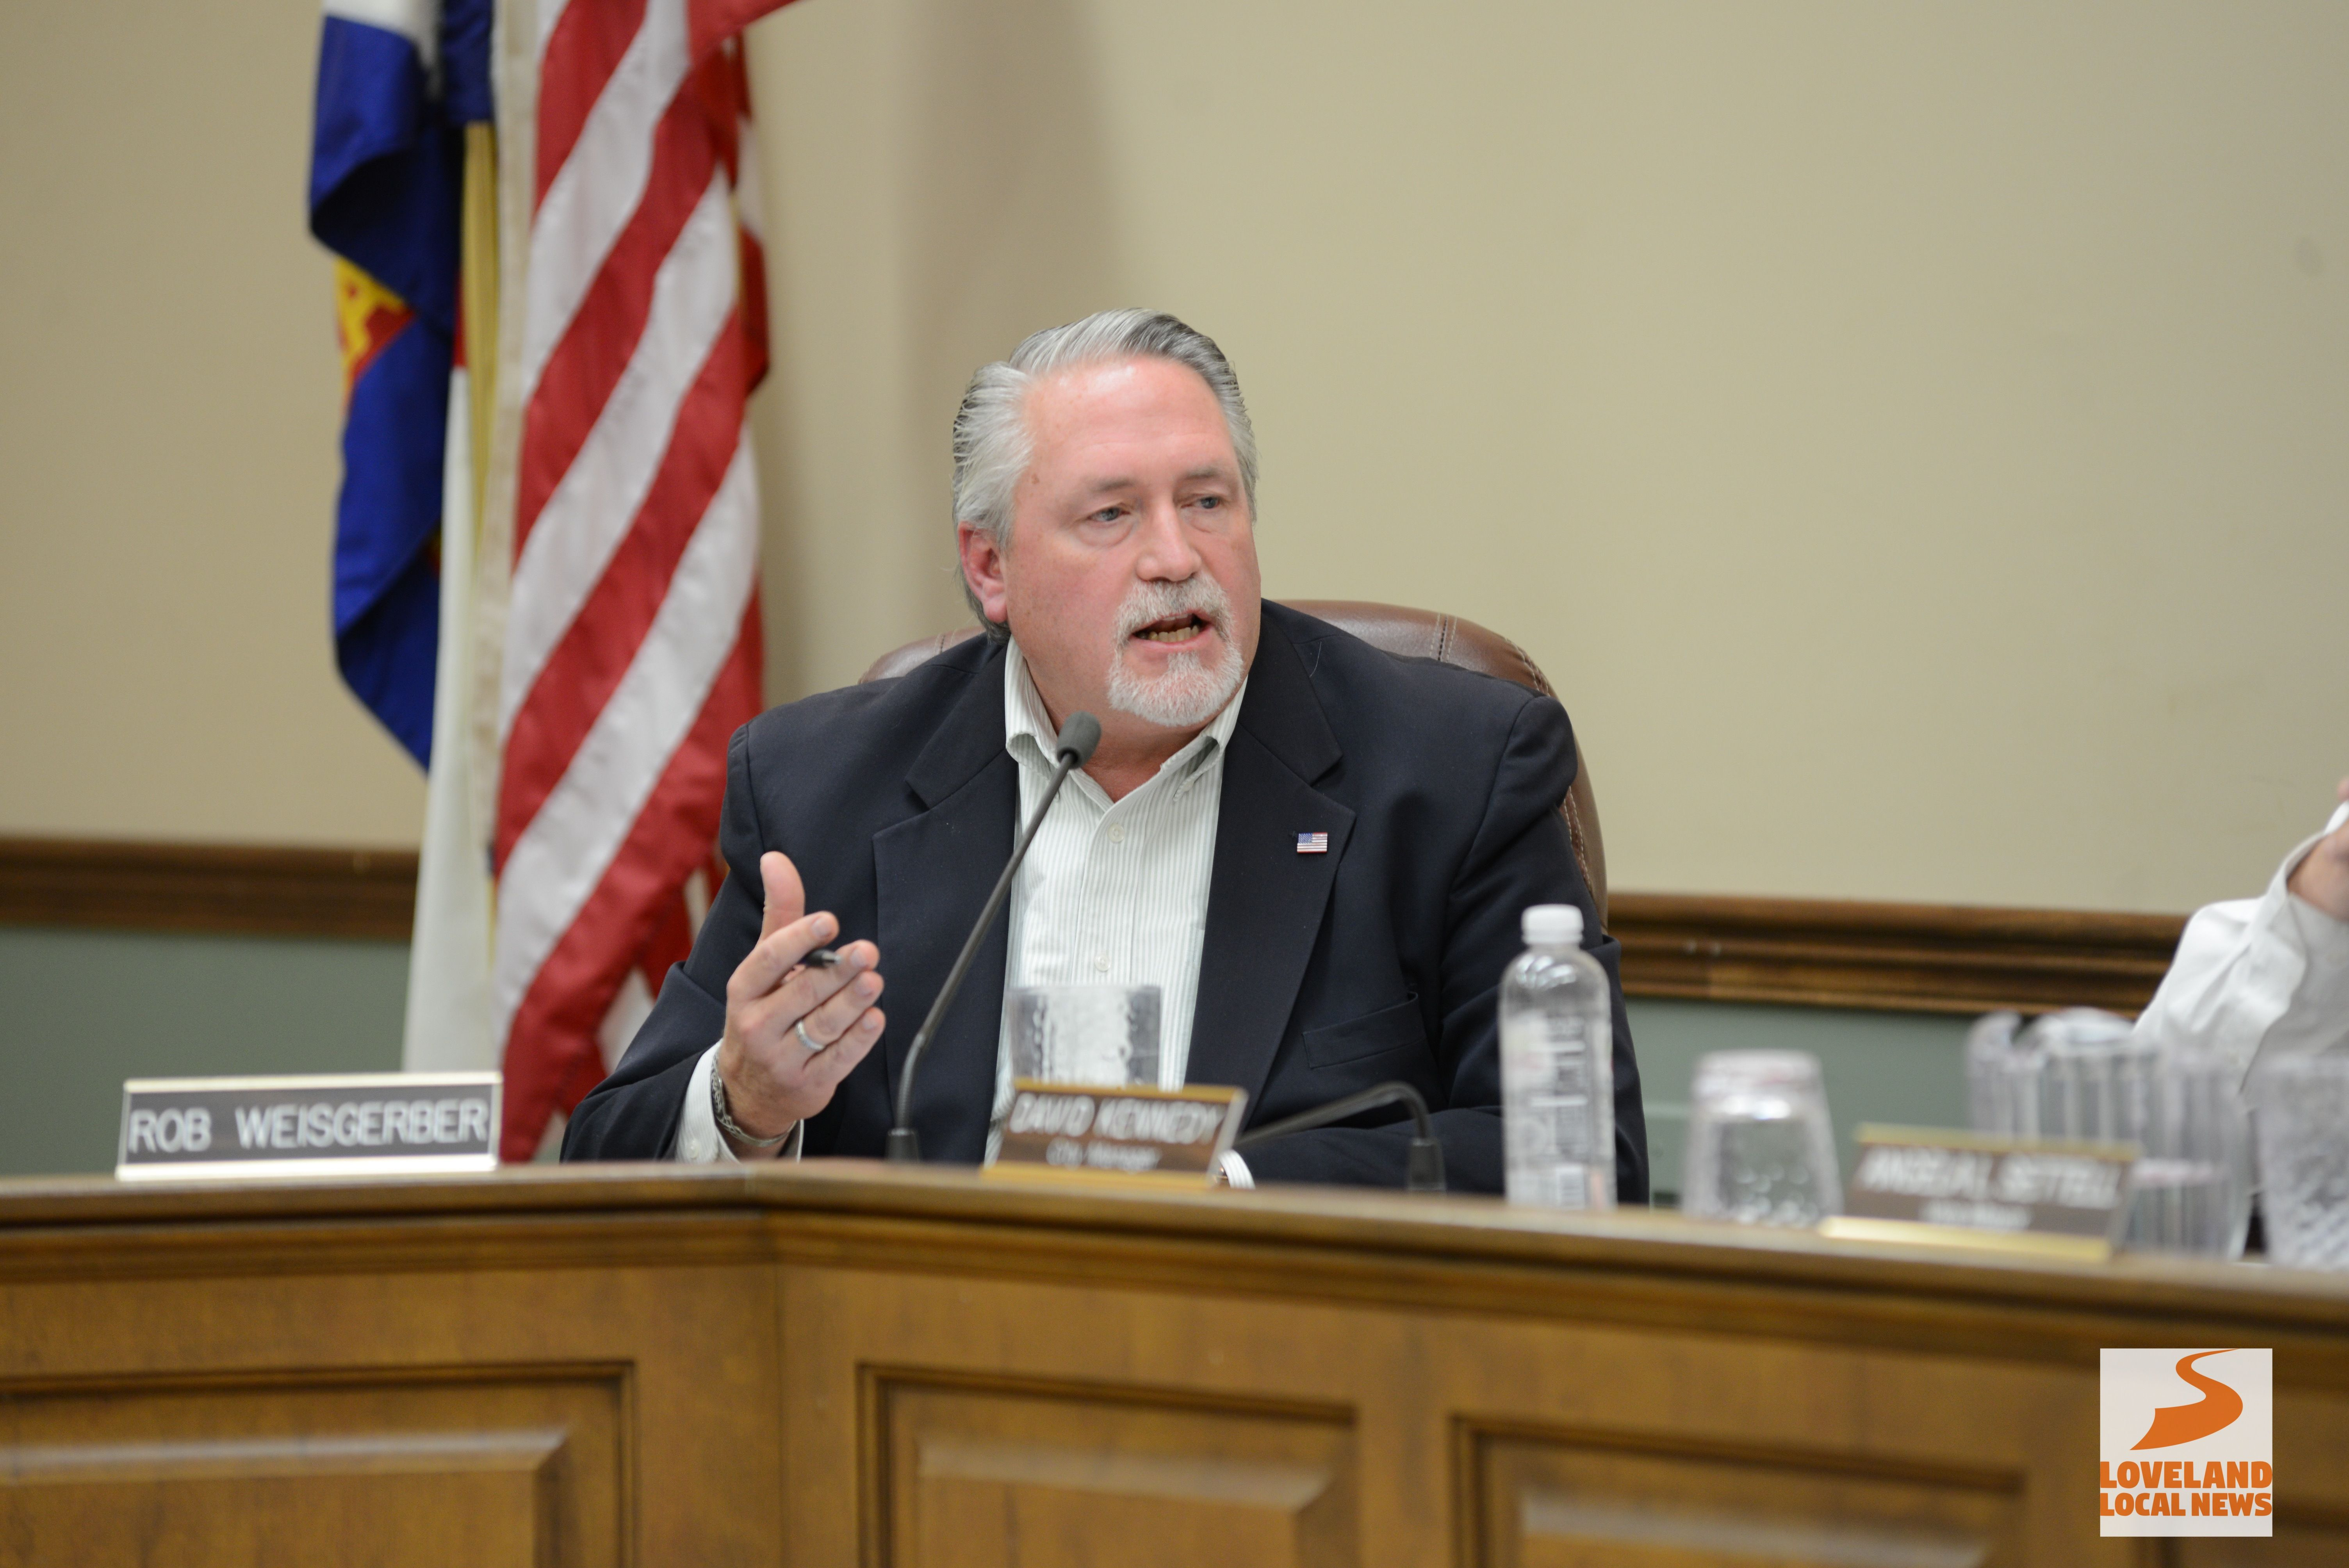 Current Vice Mayor Rob Weisgerber Is The Longest Serving Loveland City Council Member First Elected In 1995 He Has Also Served As Mayor He Was Re El Loveland